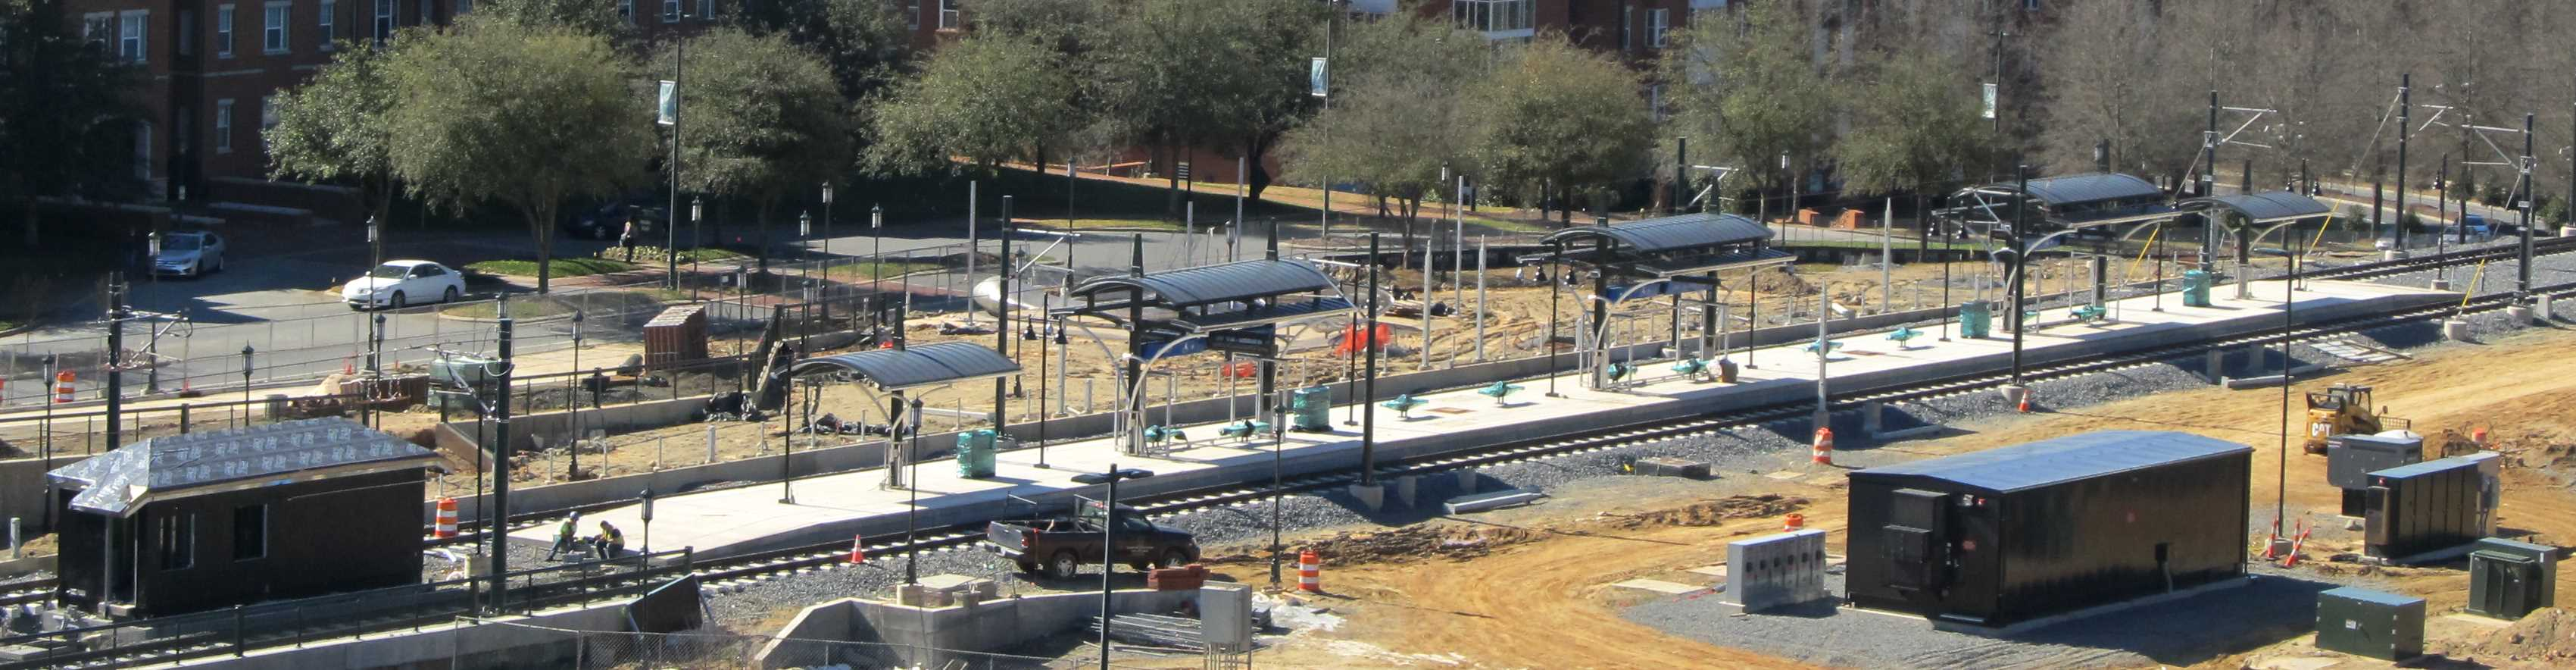 Charlotte road construction projects - Project Opening Fast Facts The Ble Will Help Move The Charlotte Region Forward